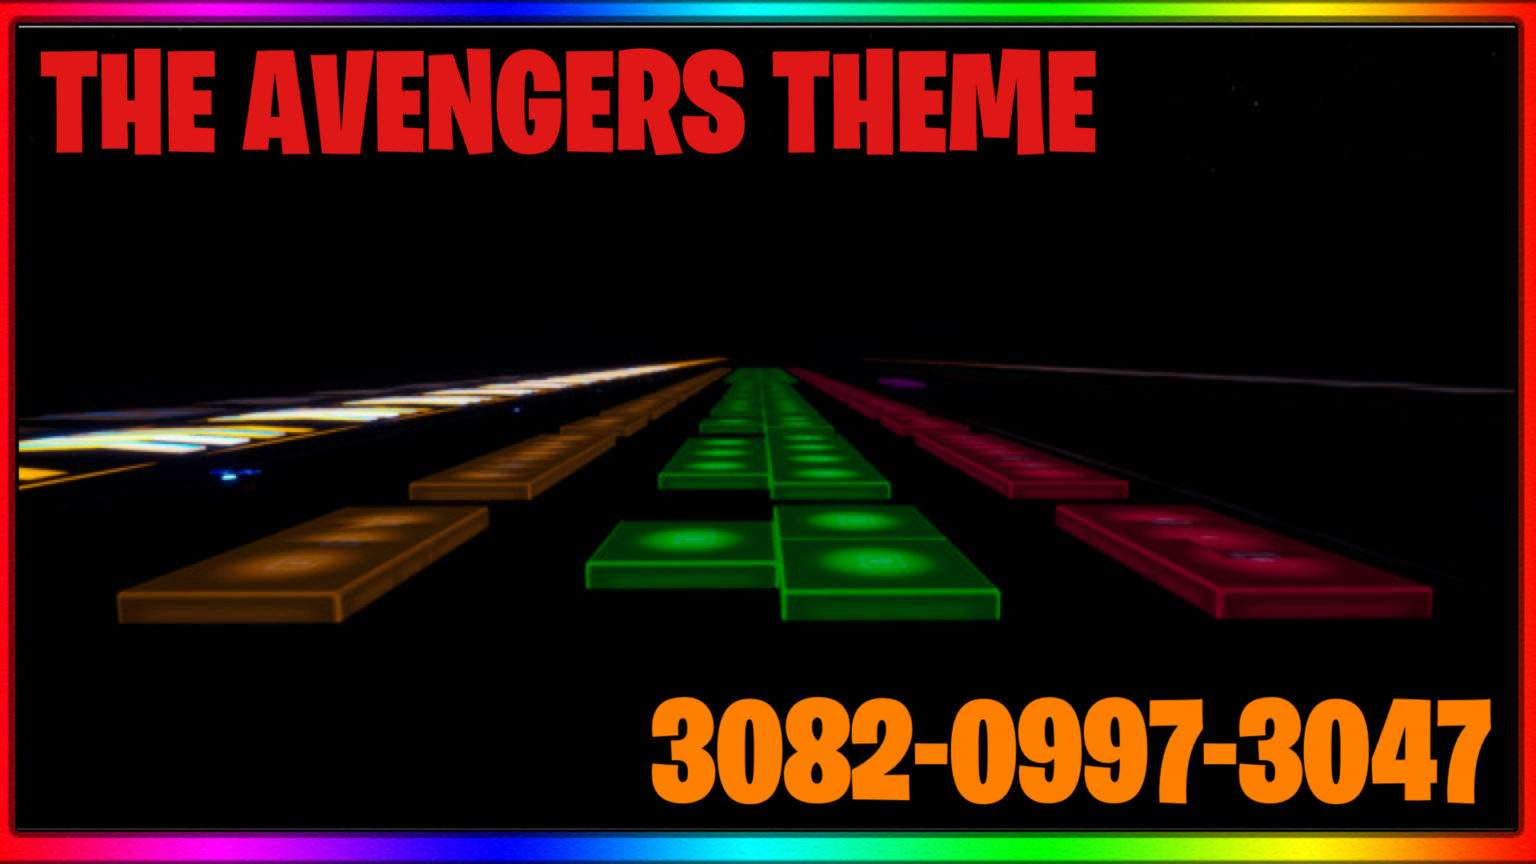 THE AVENGERS THEME